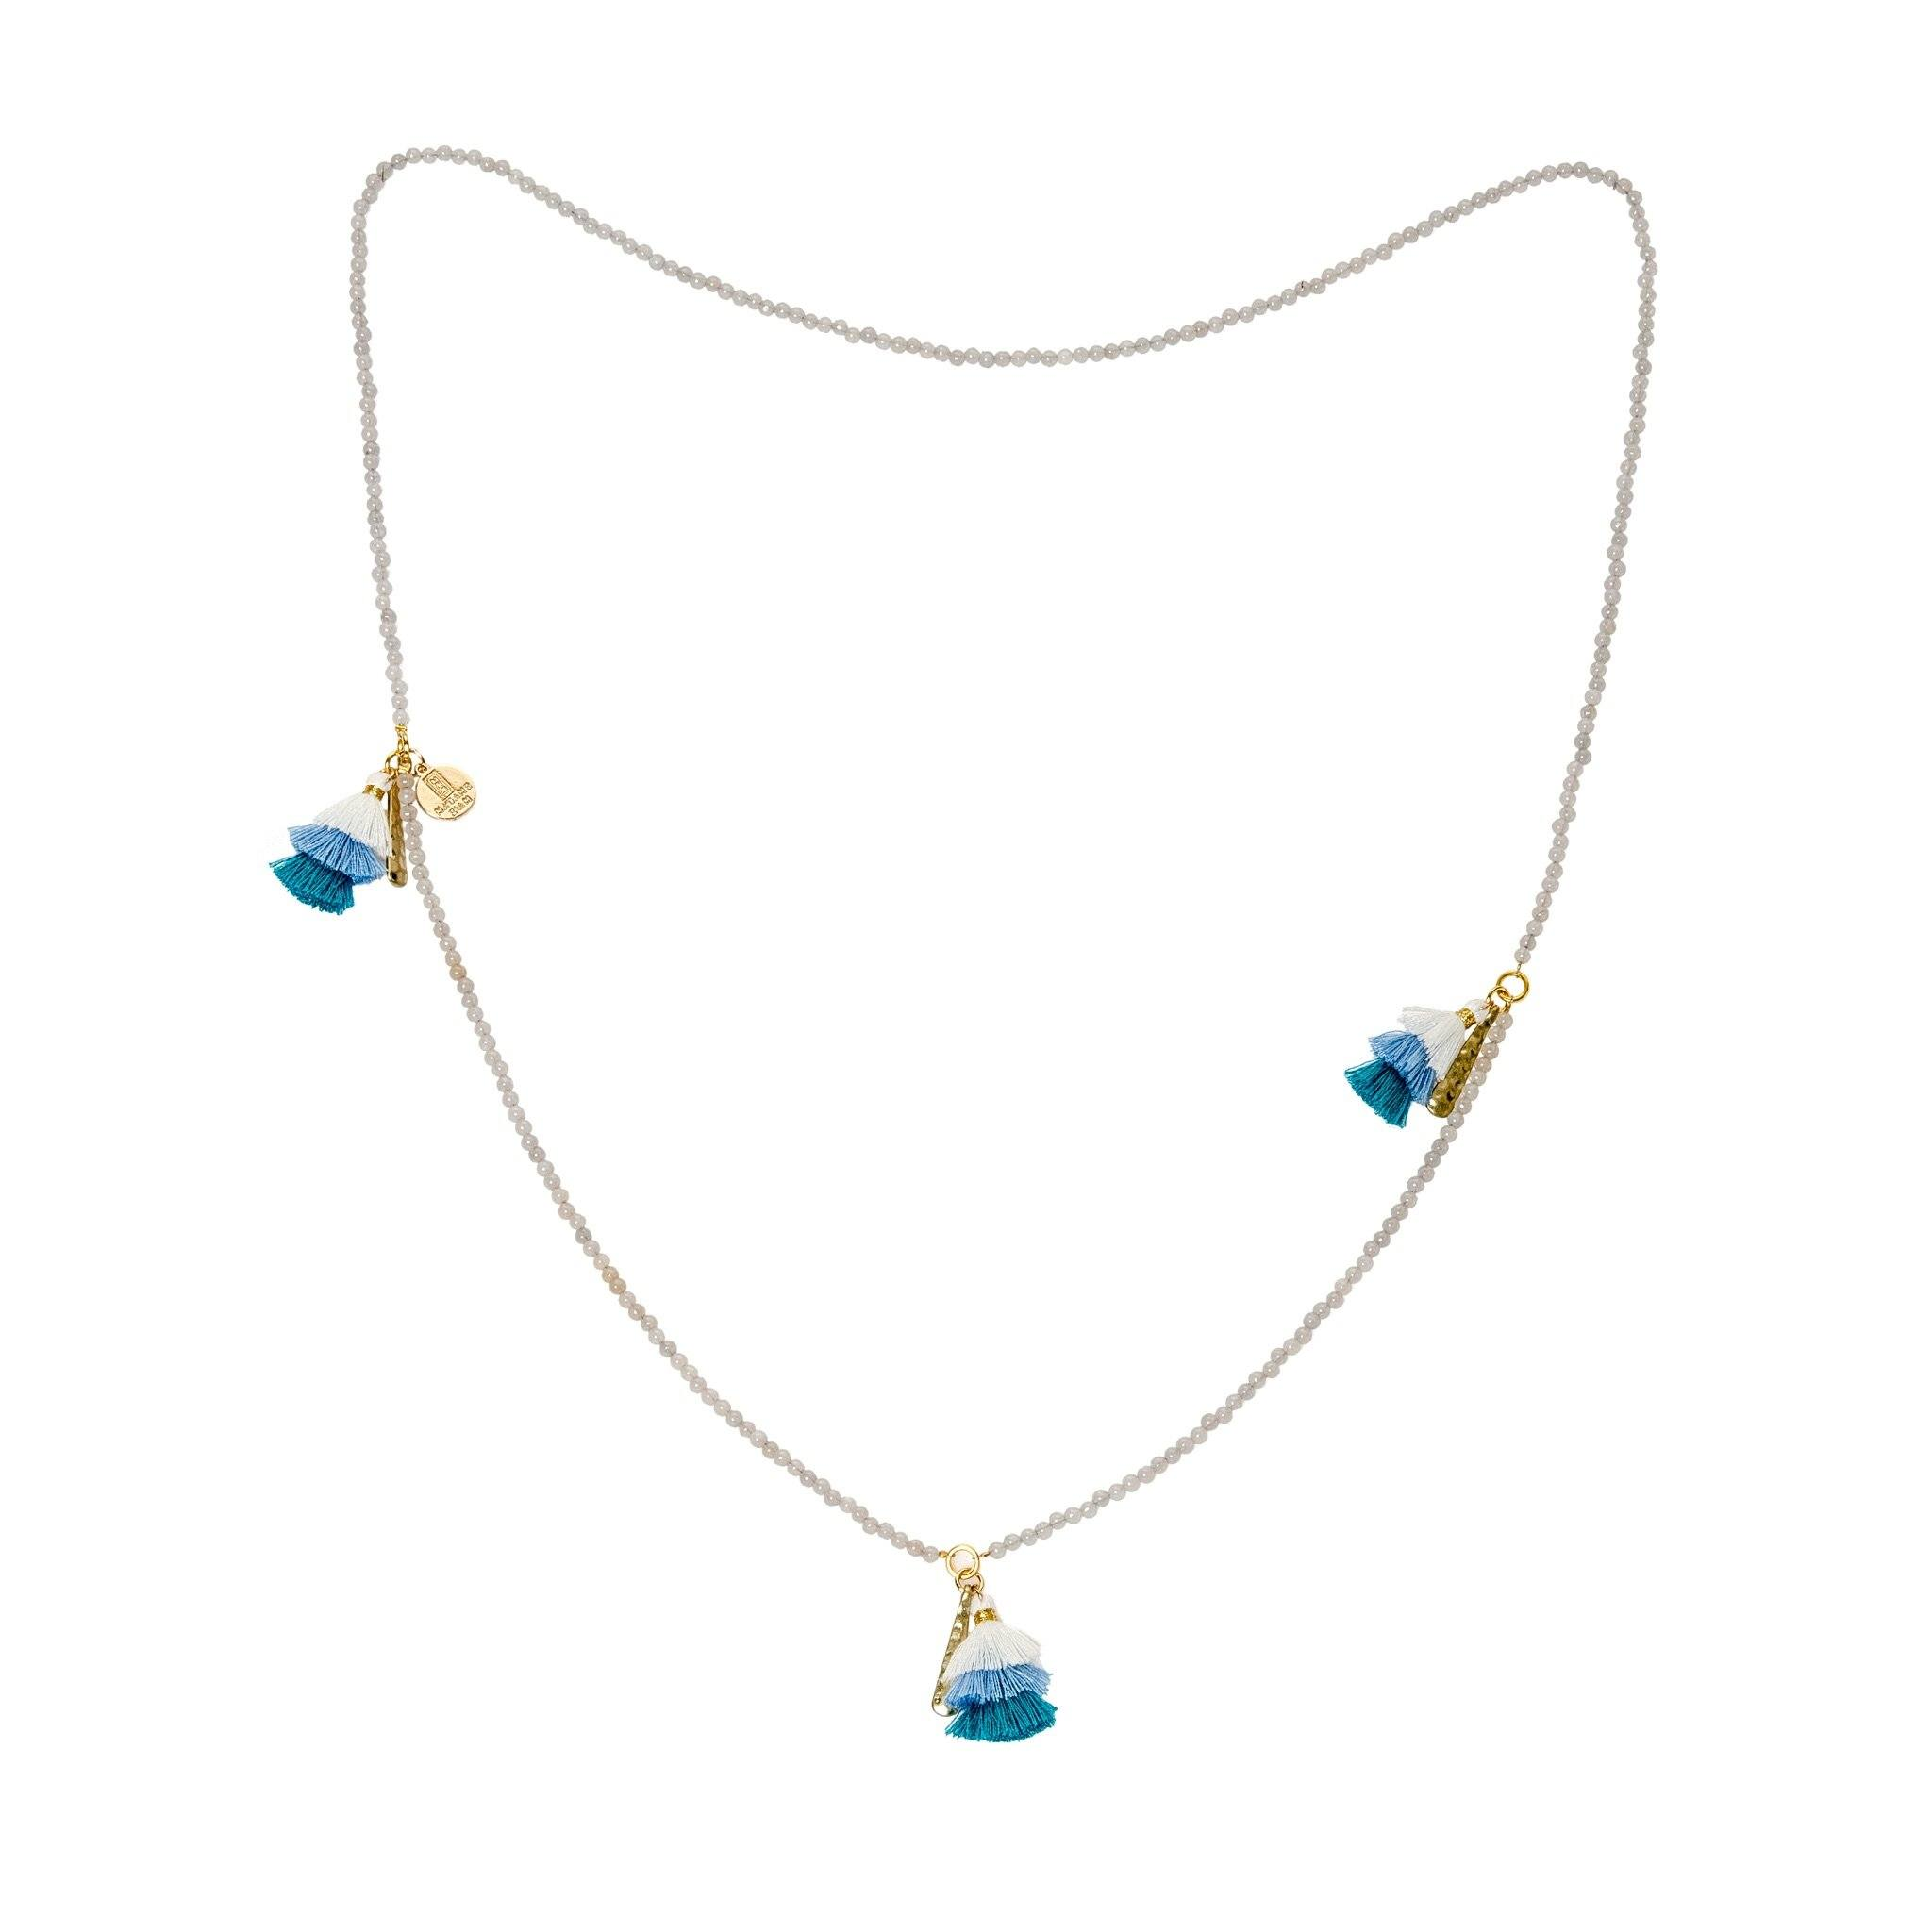 Praka moonstone and blue tassels necklace - MadamSiam